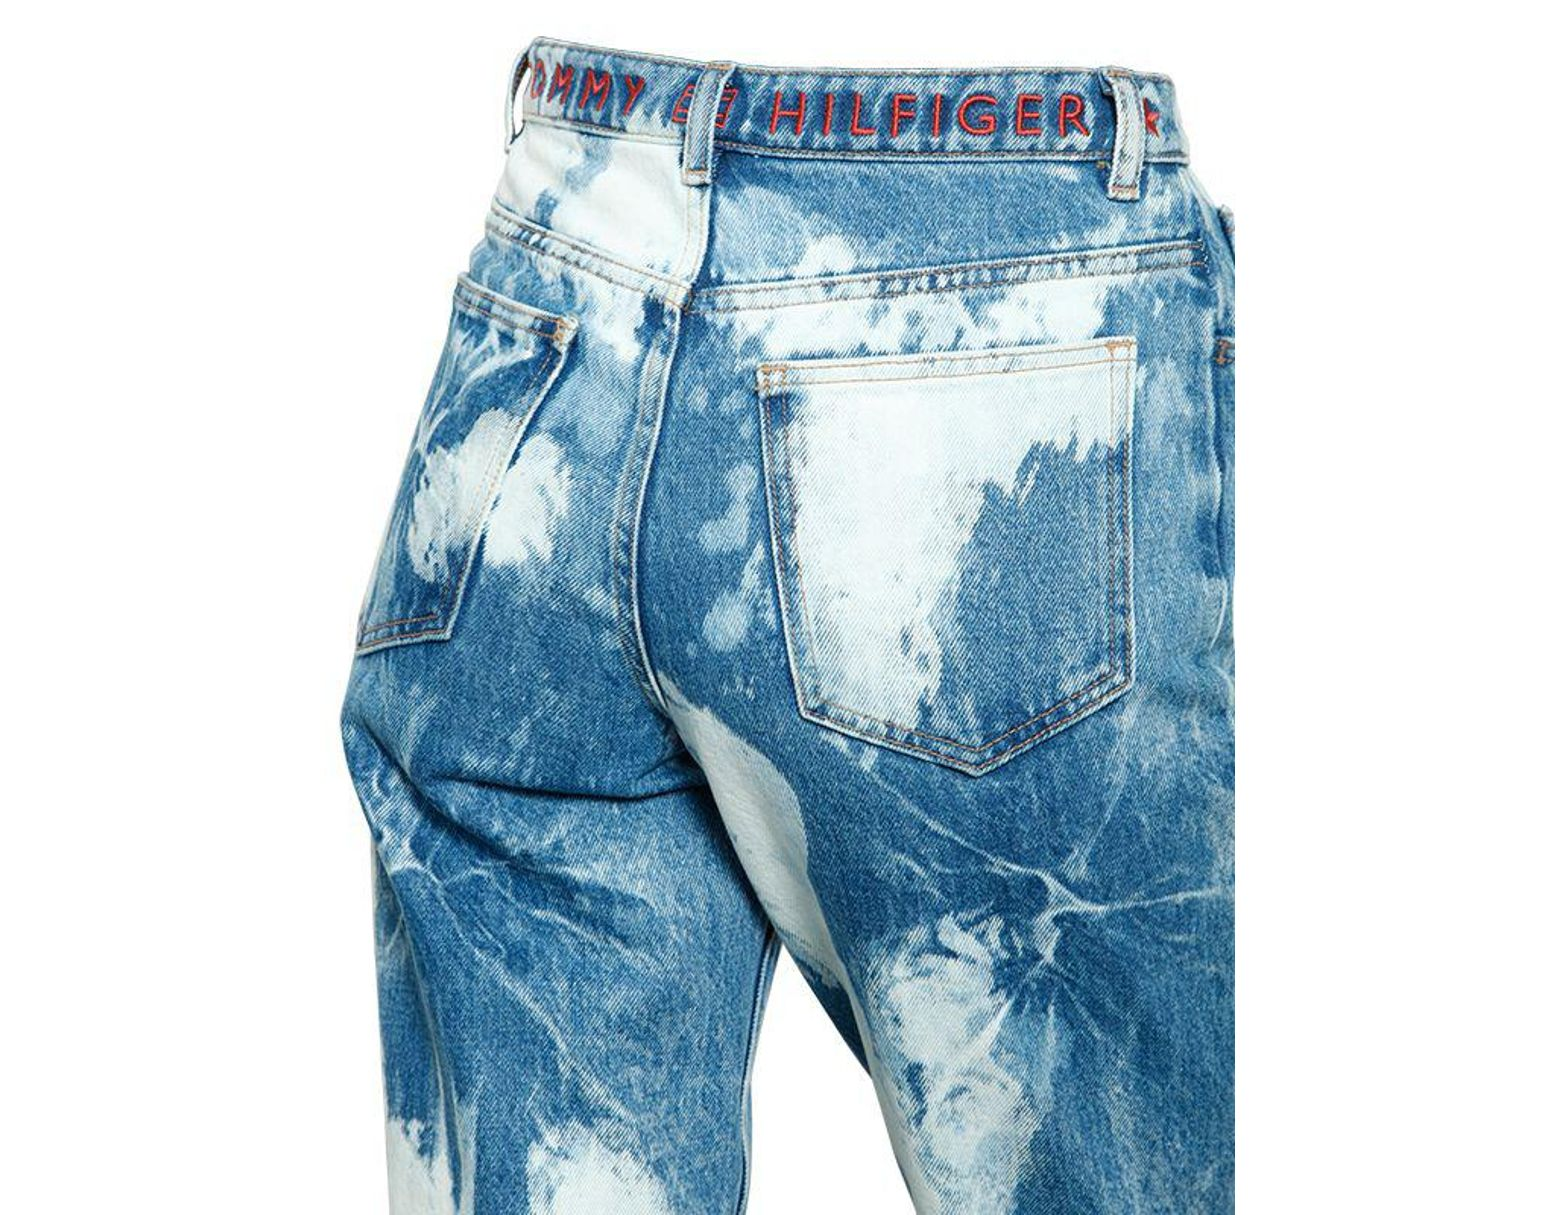 70fcf062 Tommy Hilfiger 90's Bleached Cotton Denim Jeans in Blue - Lyst